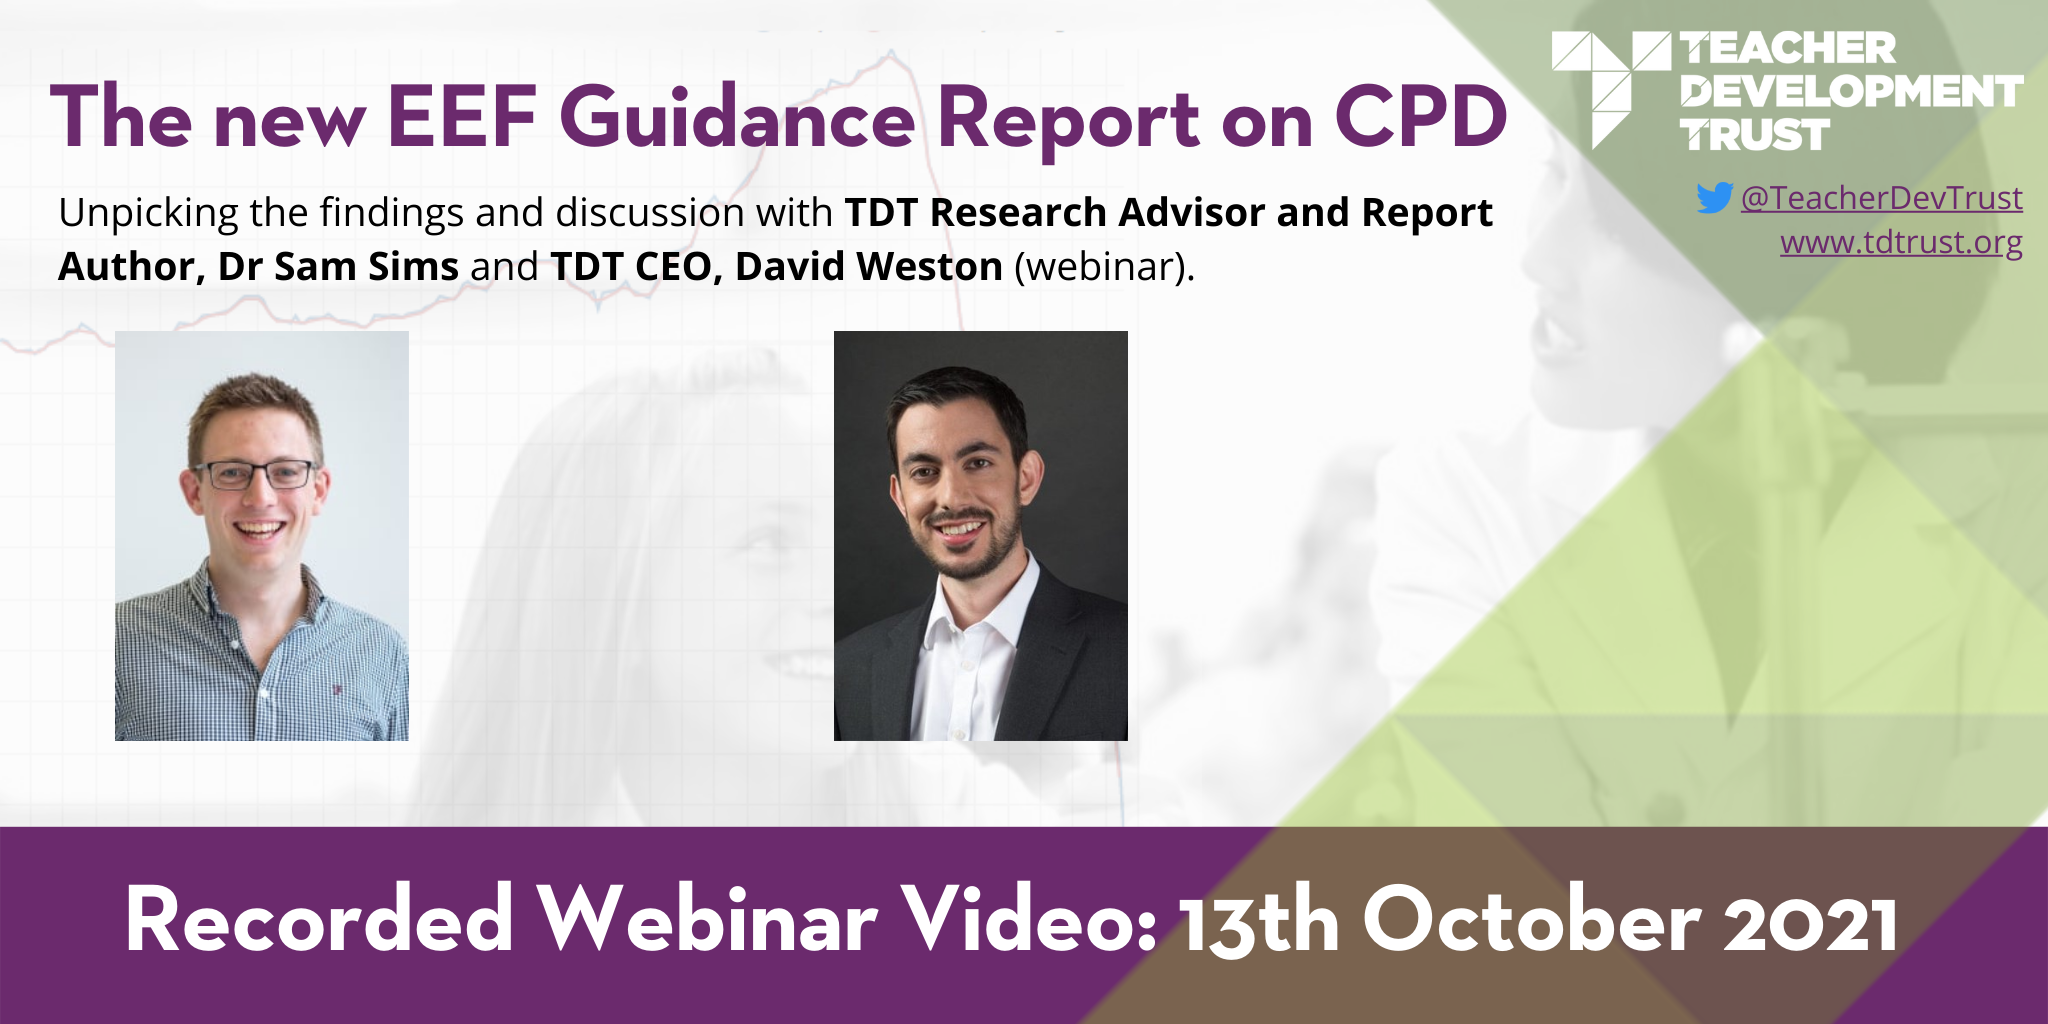 The new EEF Guidance Report on CPD: Discussion with Dr Sam Sims and David Weston 13th October 2021